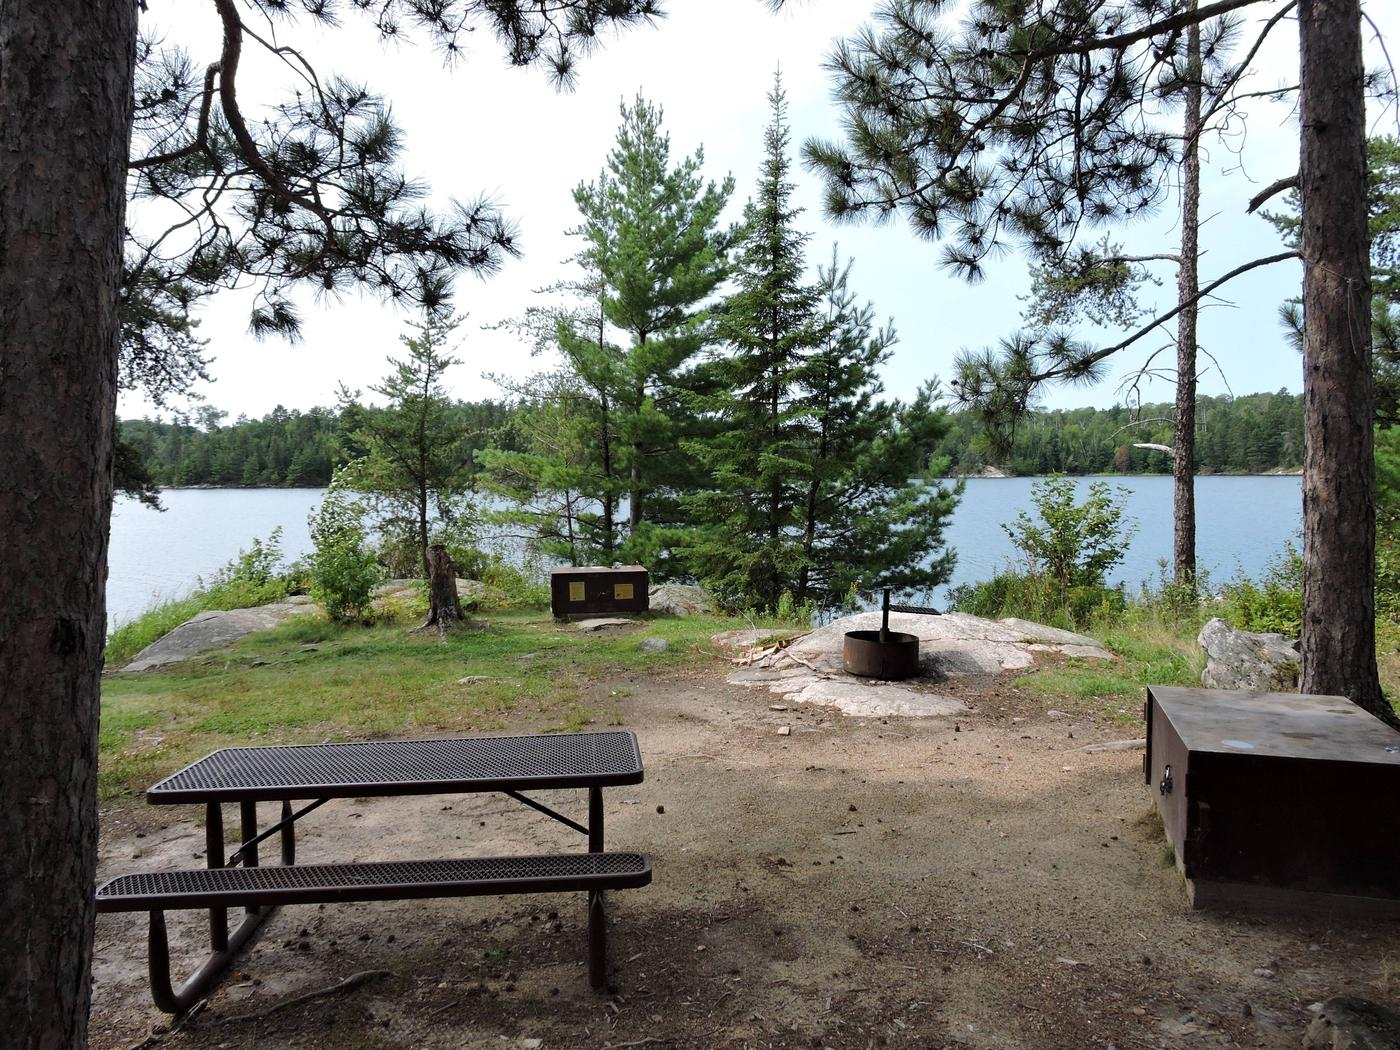 S19 - Wolf IslandView looking out from campsite